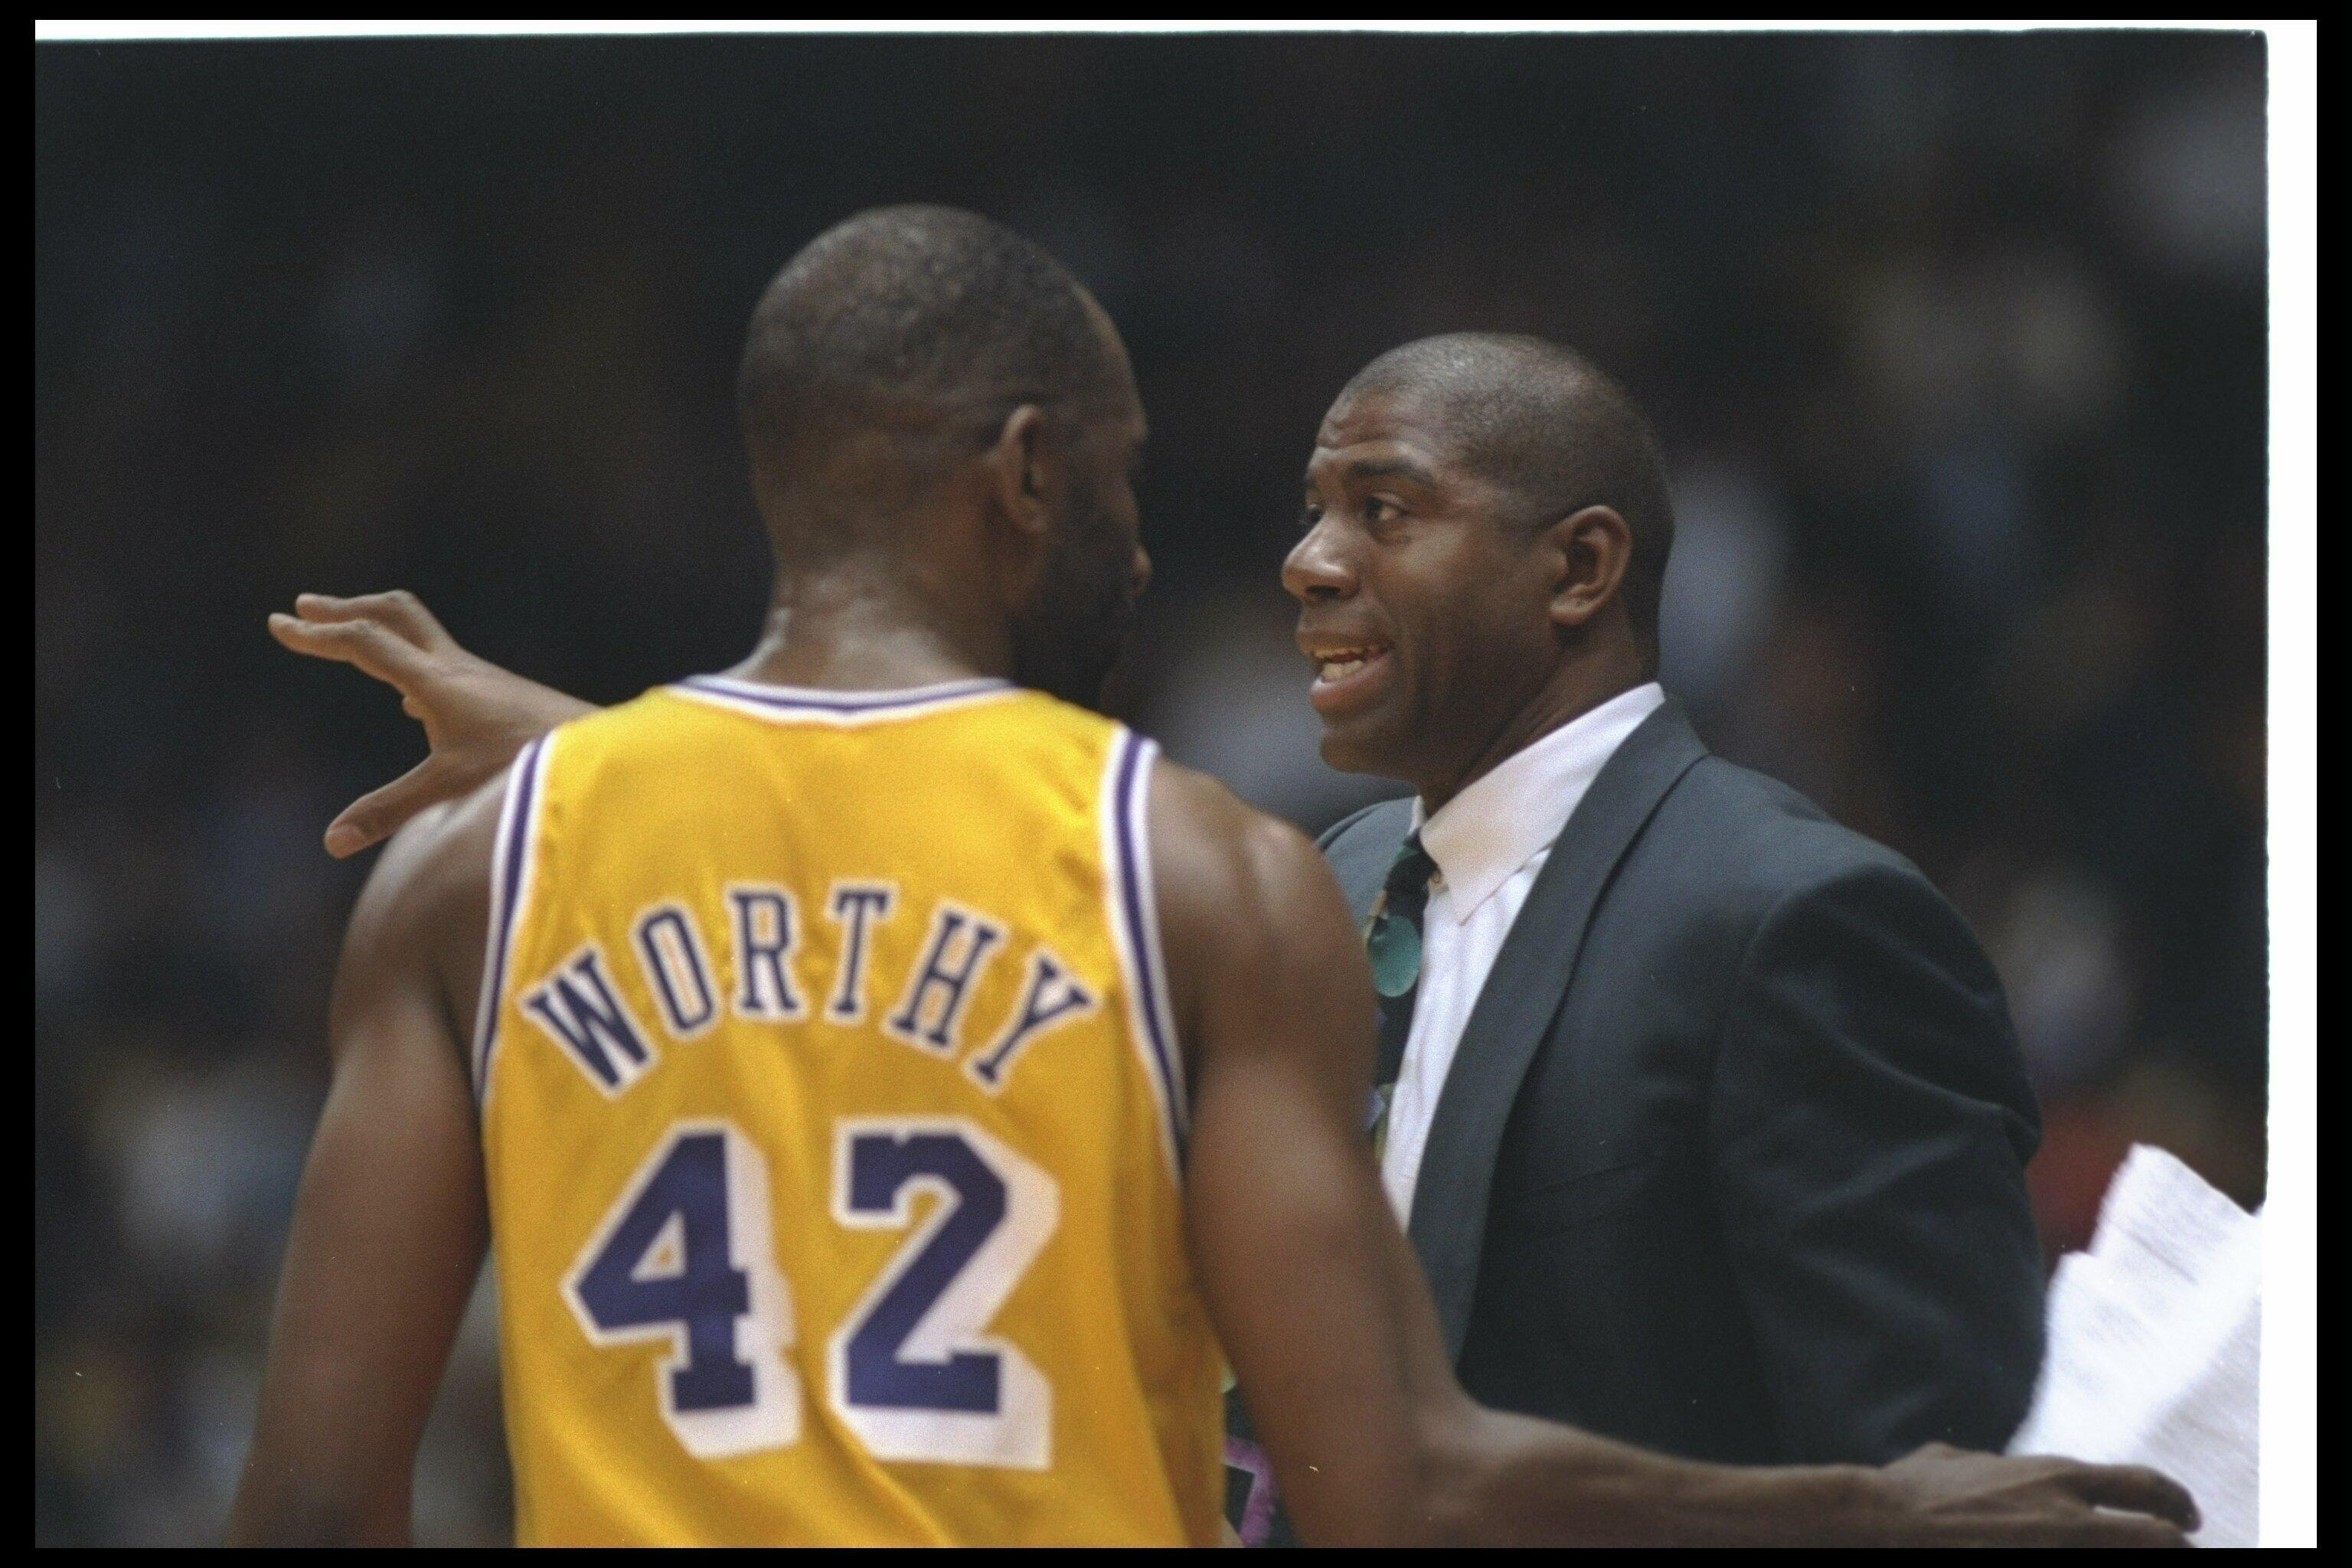 James Worthy Getting fortable with losing was last straw